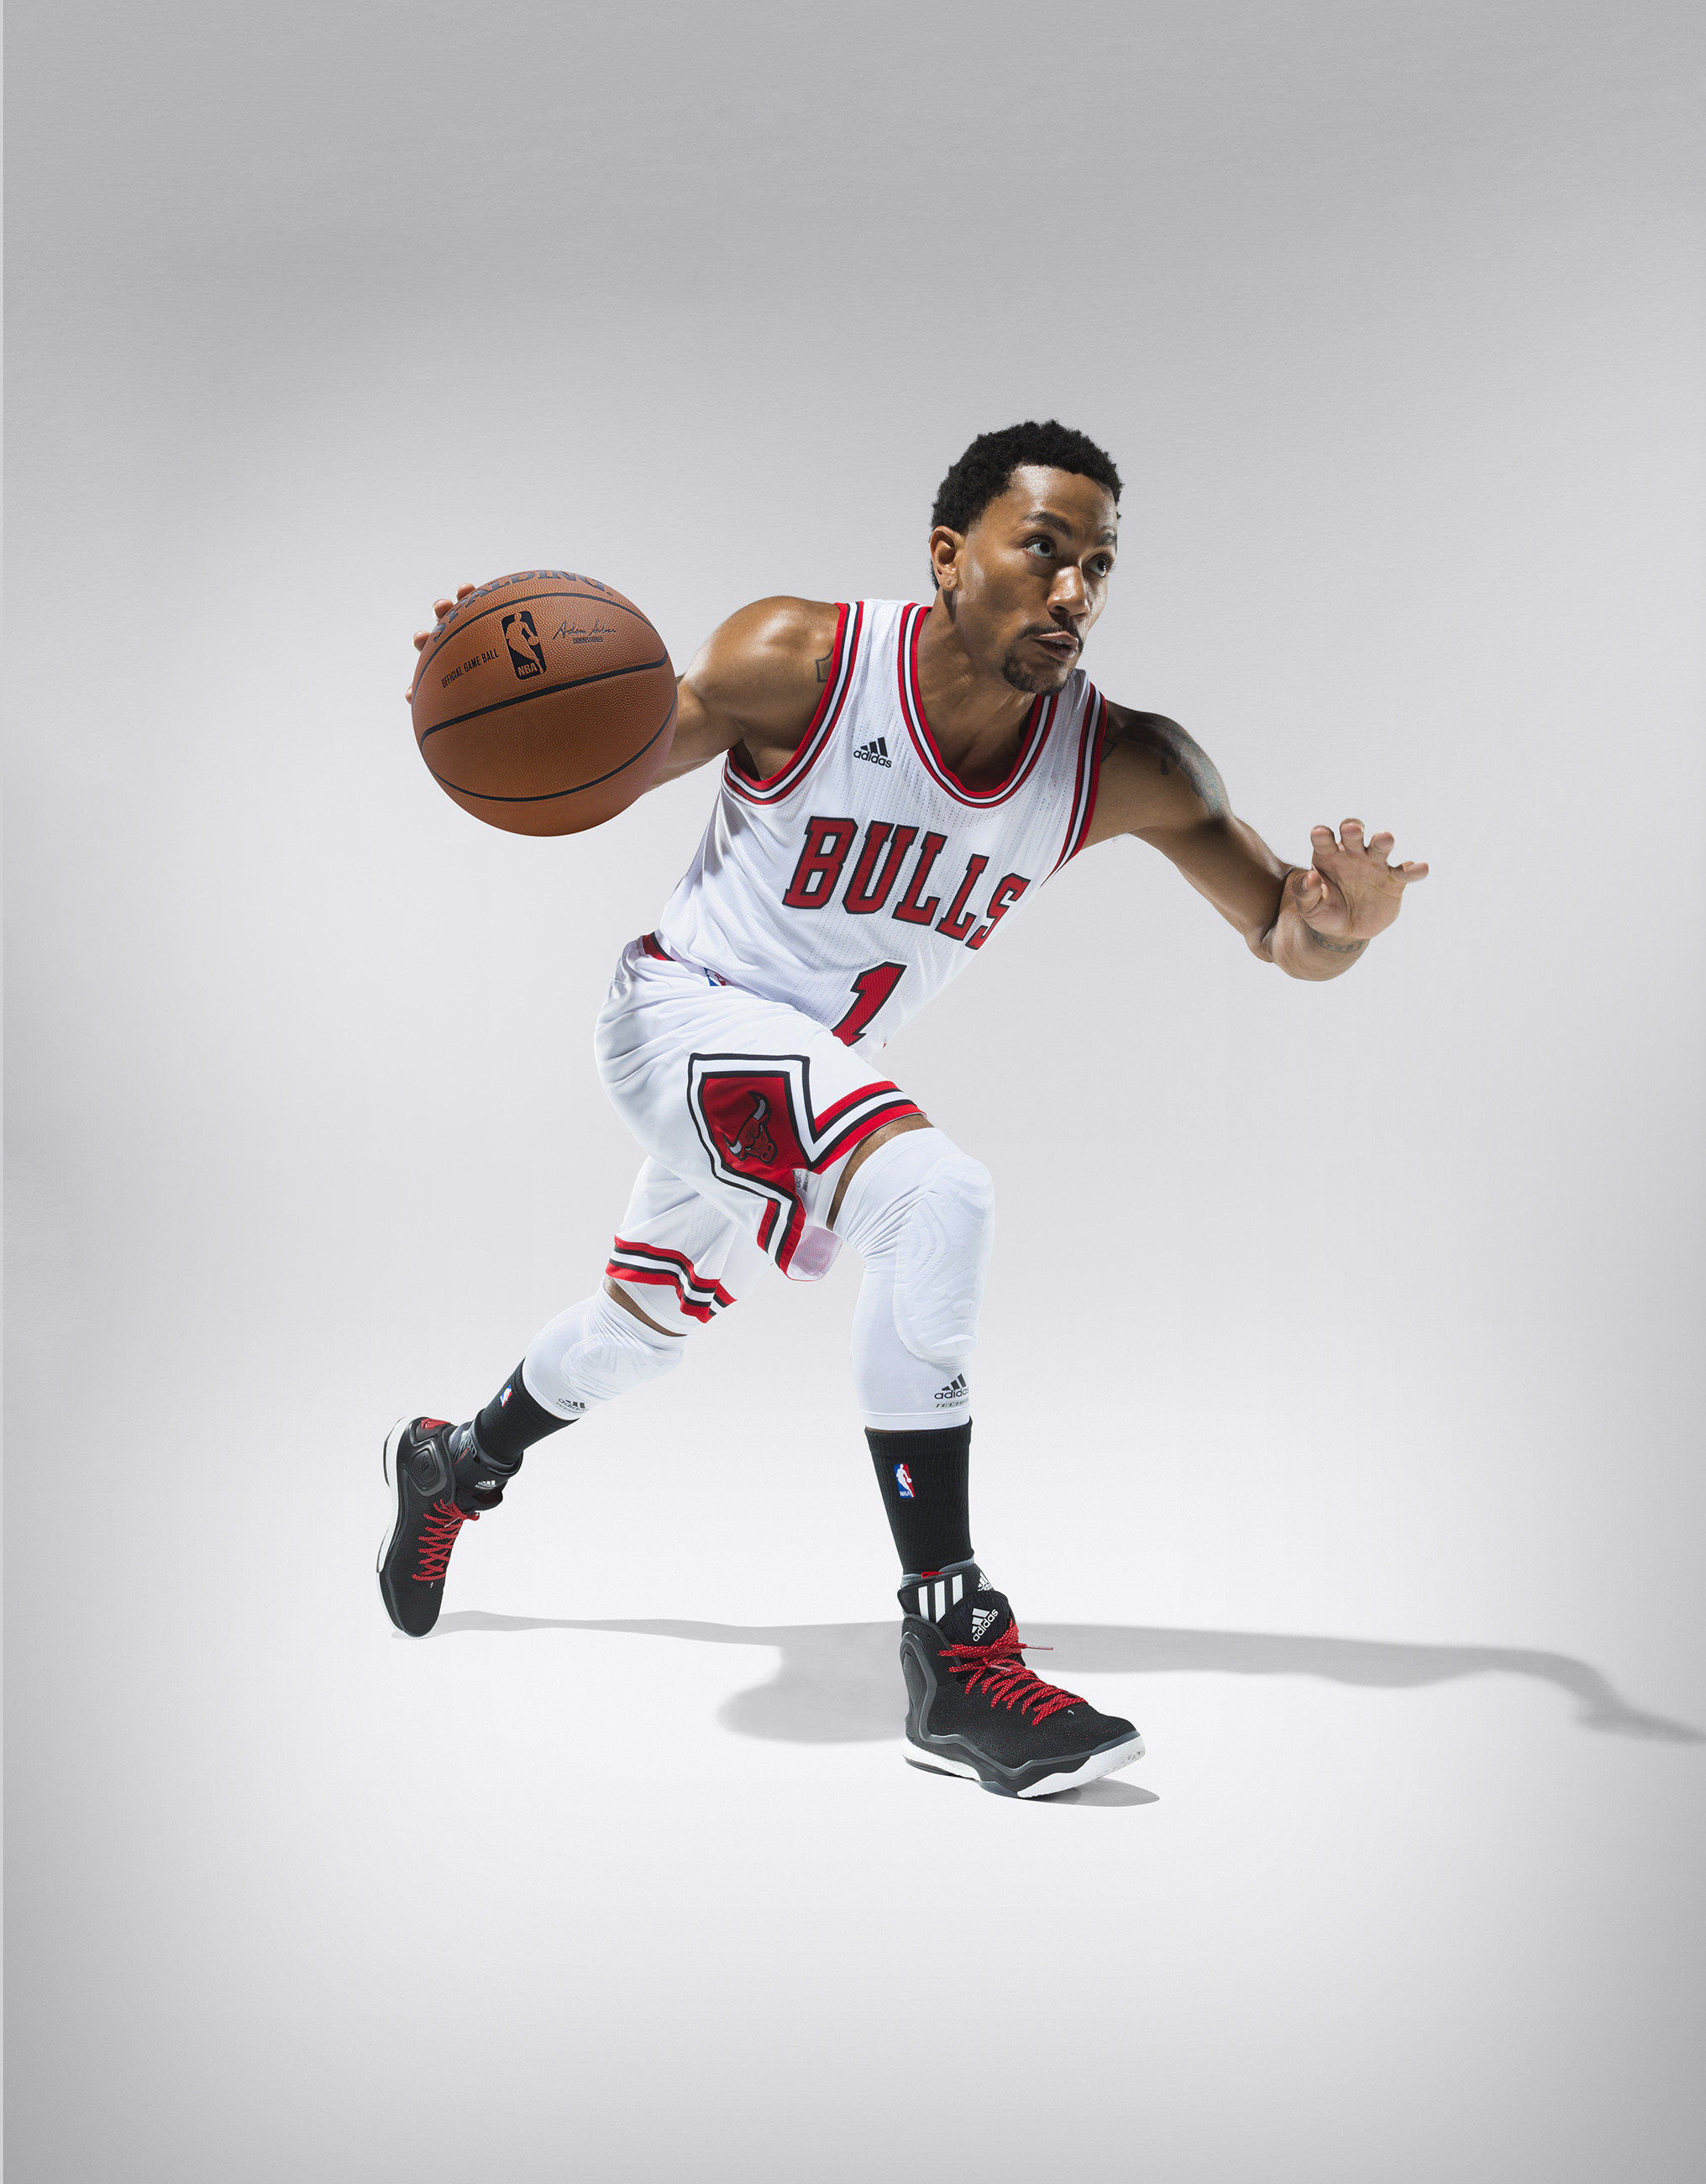 Derrick Rose 2015 Wallpapers 2031x2600